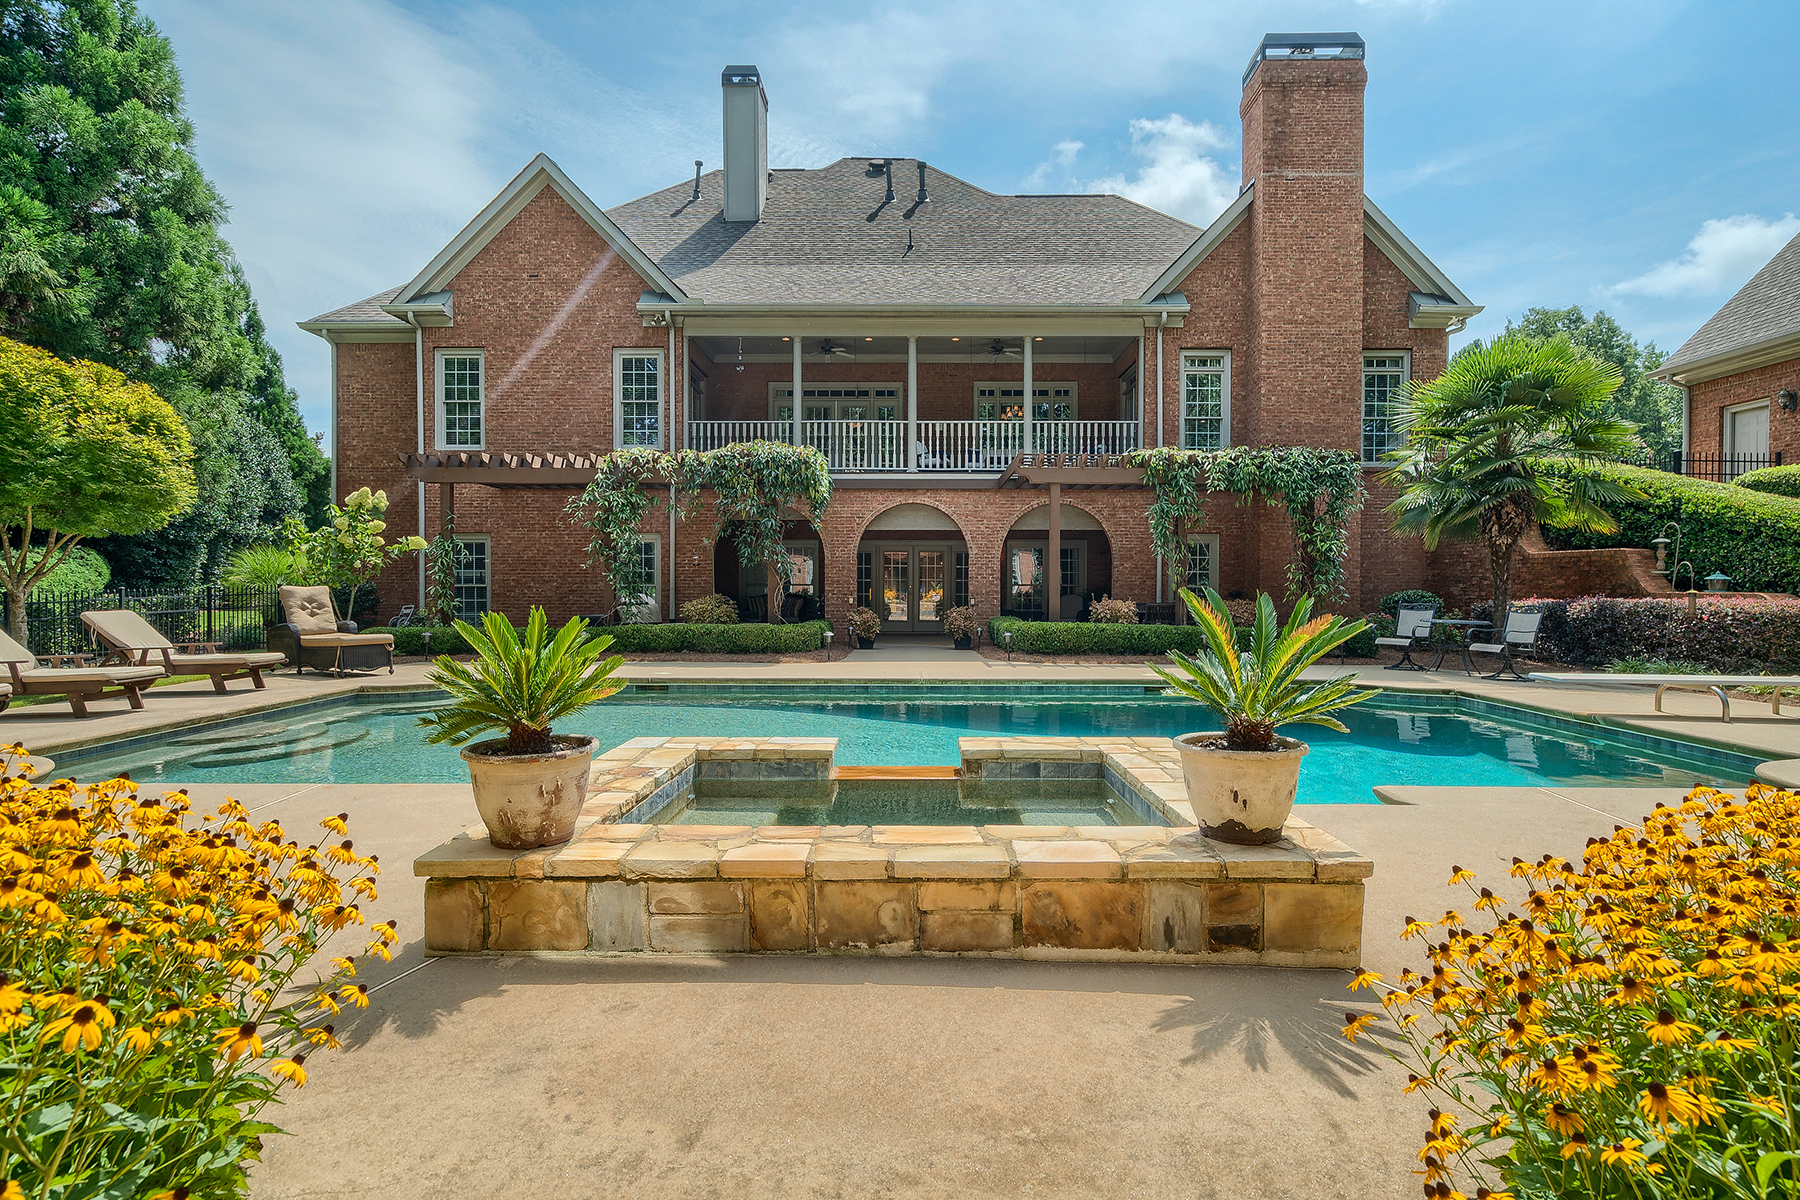 Single Family Home for Sale at Sprawling European Ranch 4760 Highland Point Drive Auburn, Georgia 30011 United States